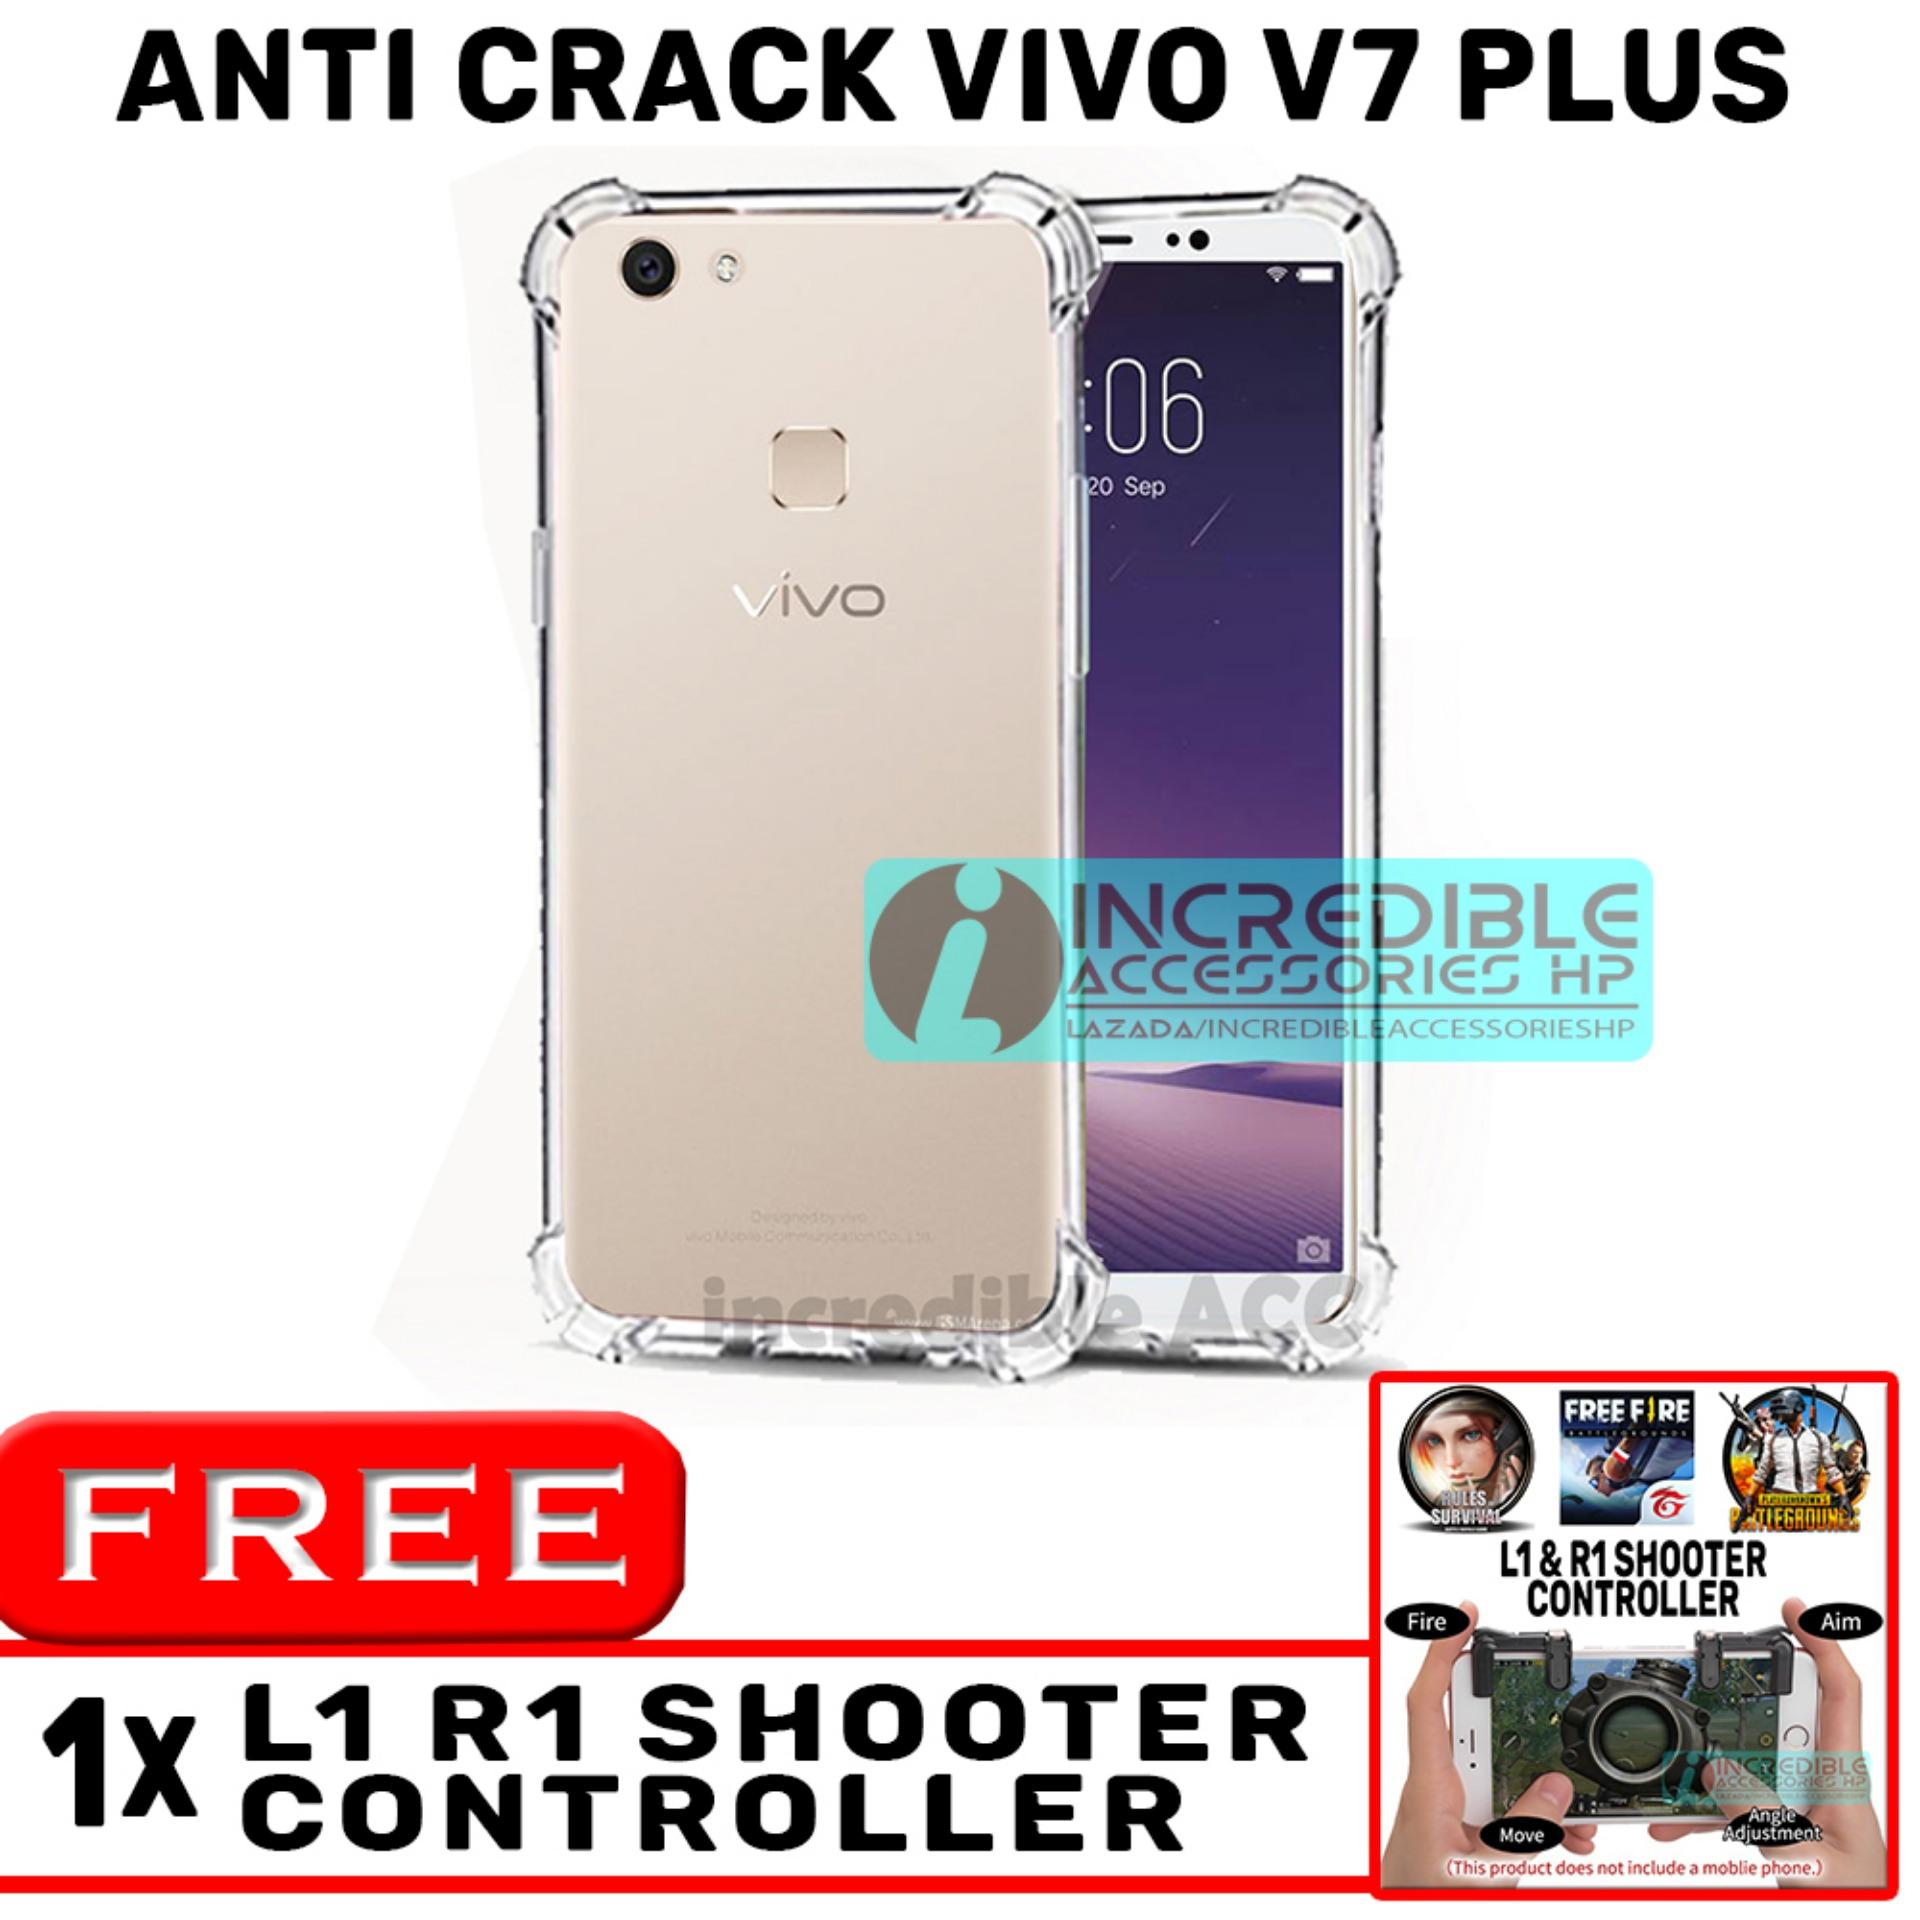 Anti Crack for Vivo V7 Plus Softcase Elegant Anti Shock Jelly Case - Bening + Free PUBG Mobile L1 R1 Shooter Controller